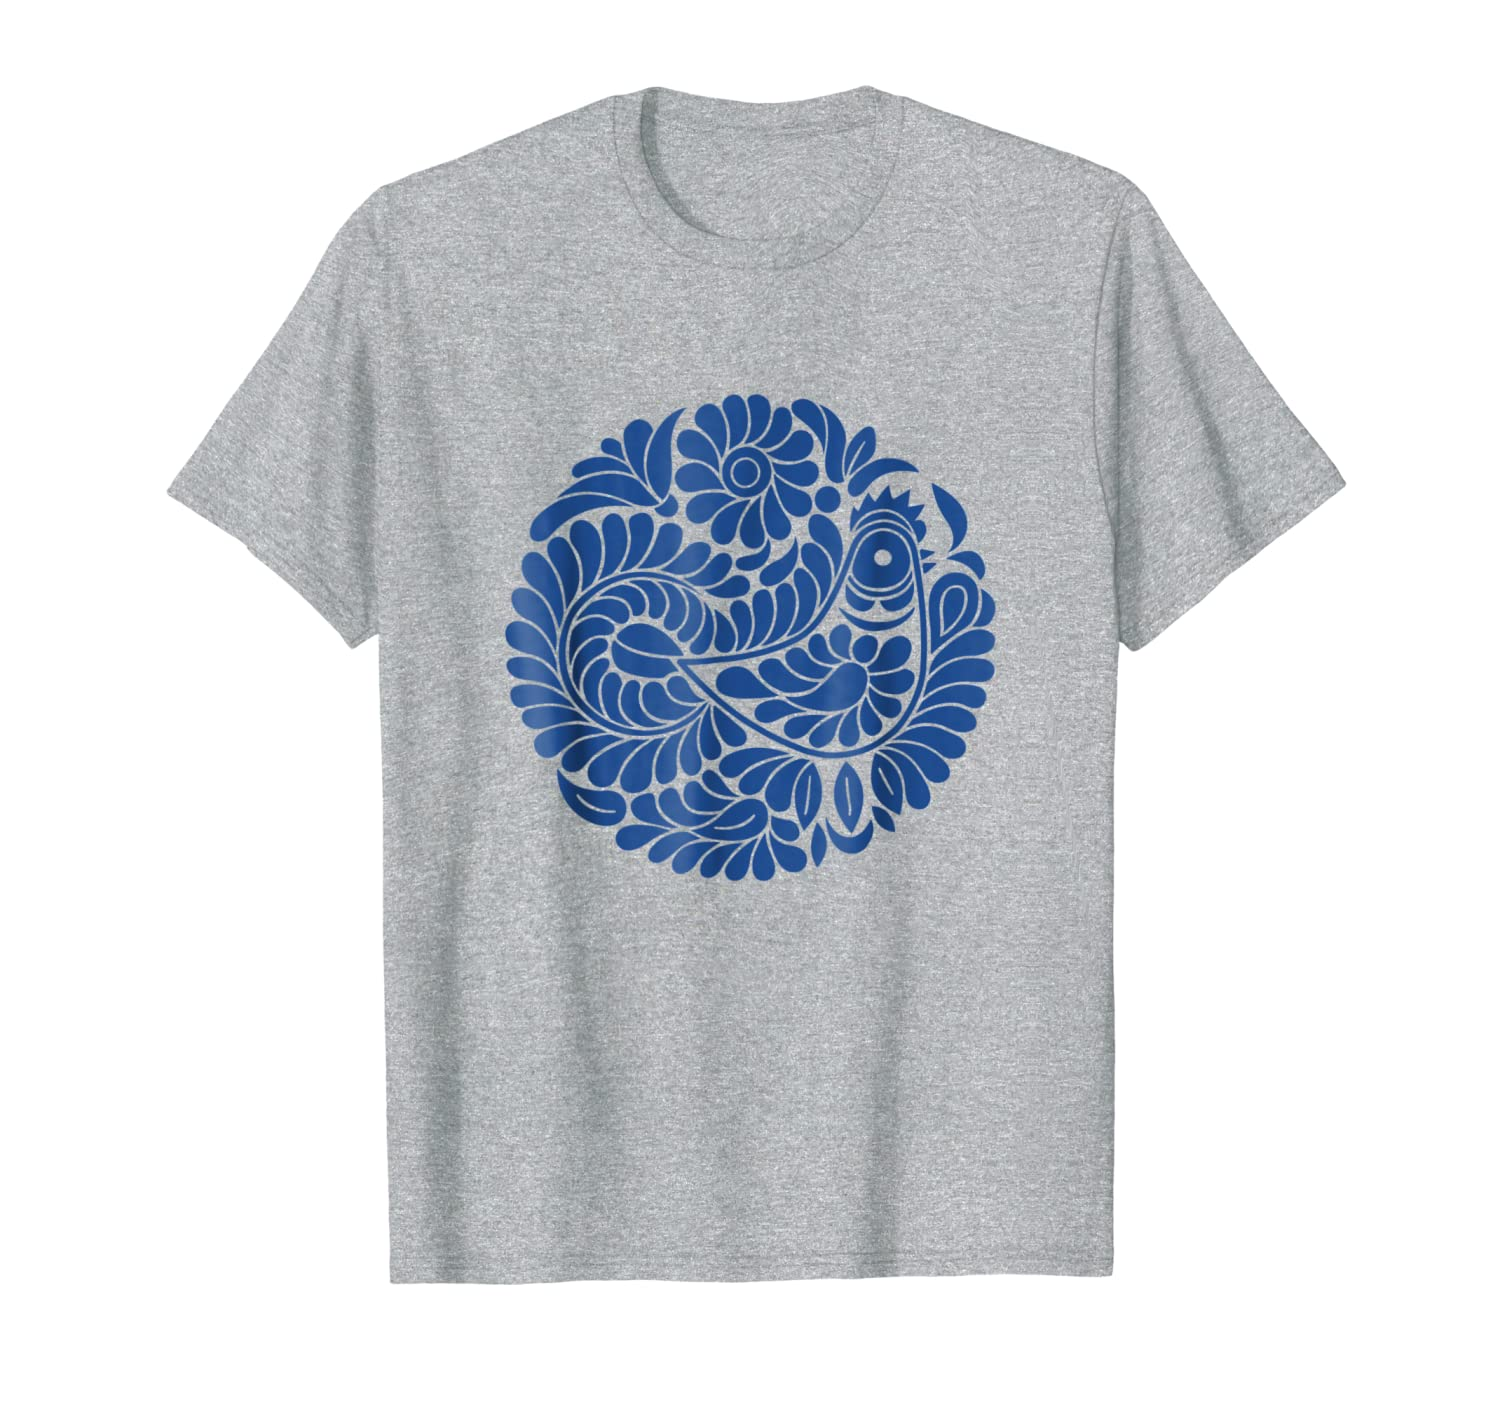 Ludovo: Singing Bird Slovak Folklore Blue Design T-Shirt-ANZ